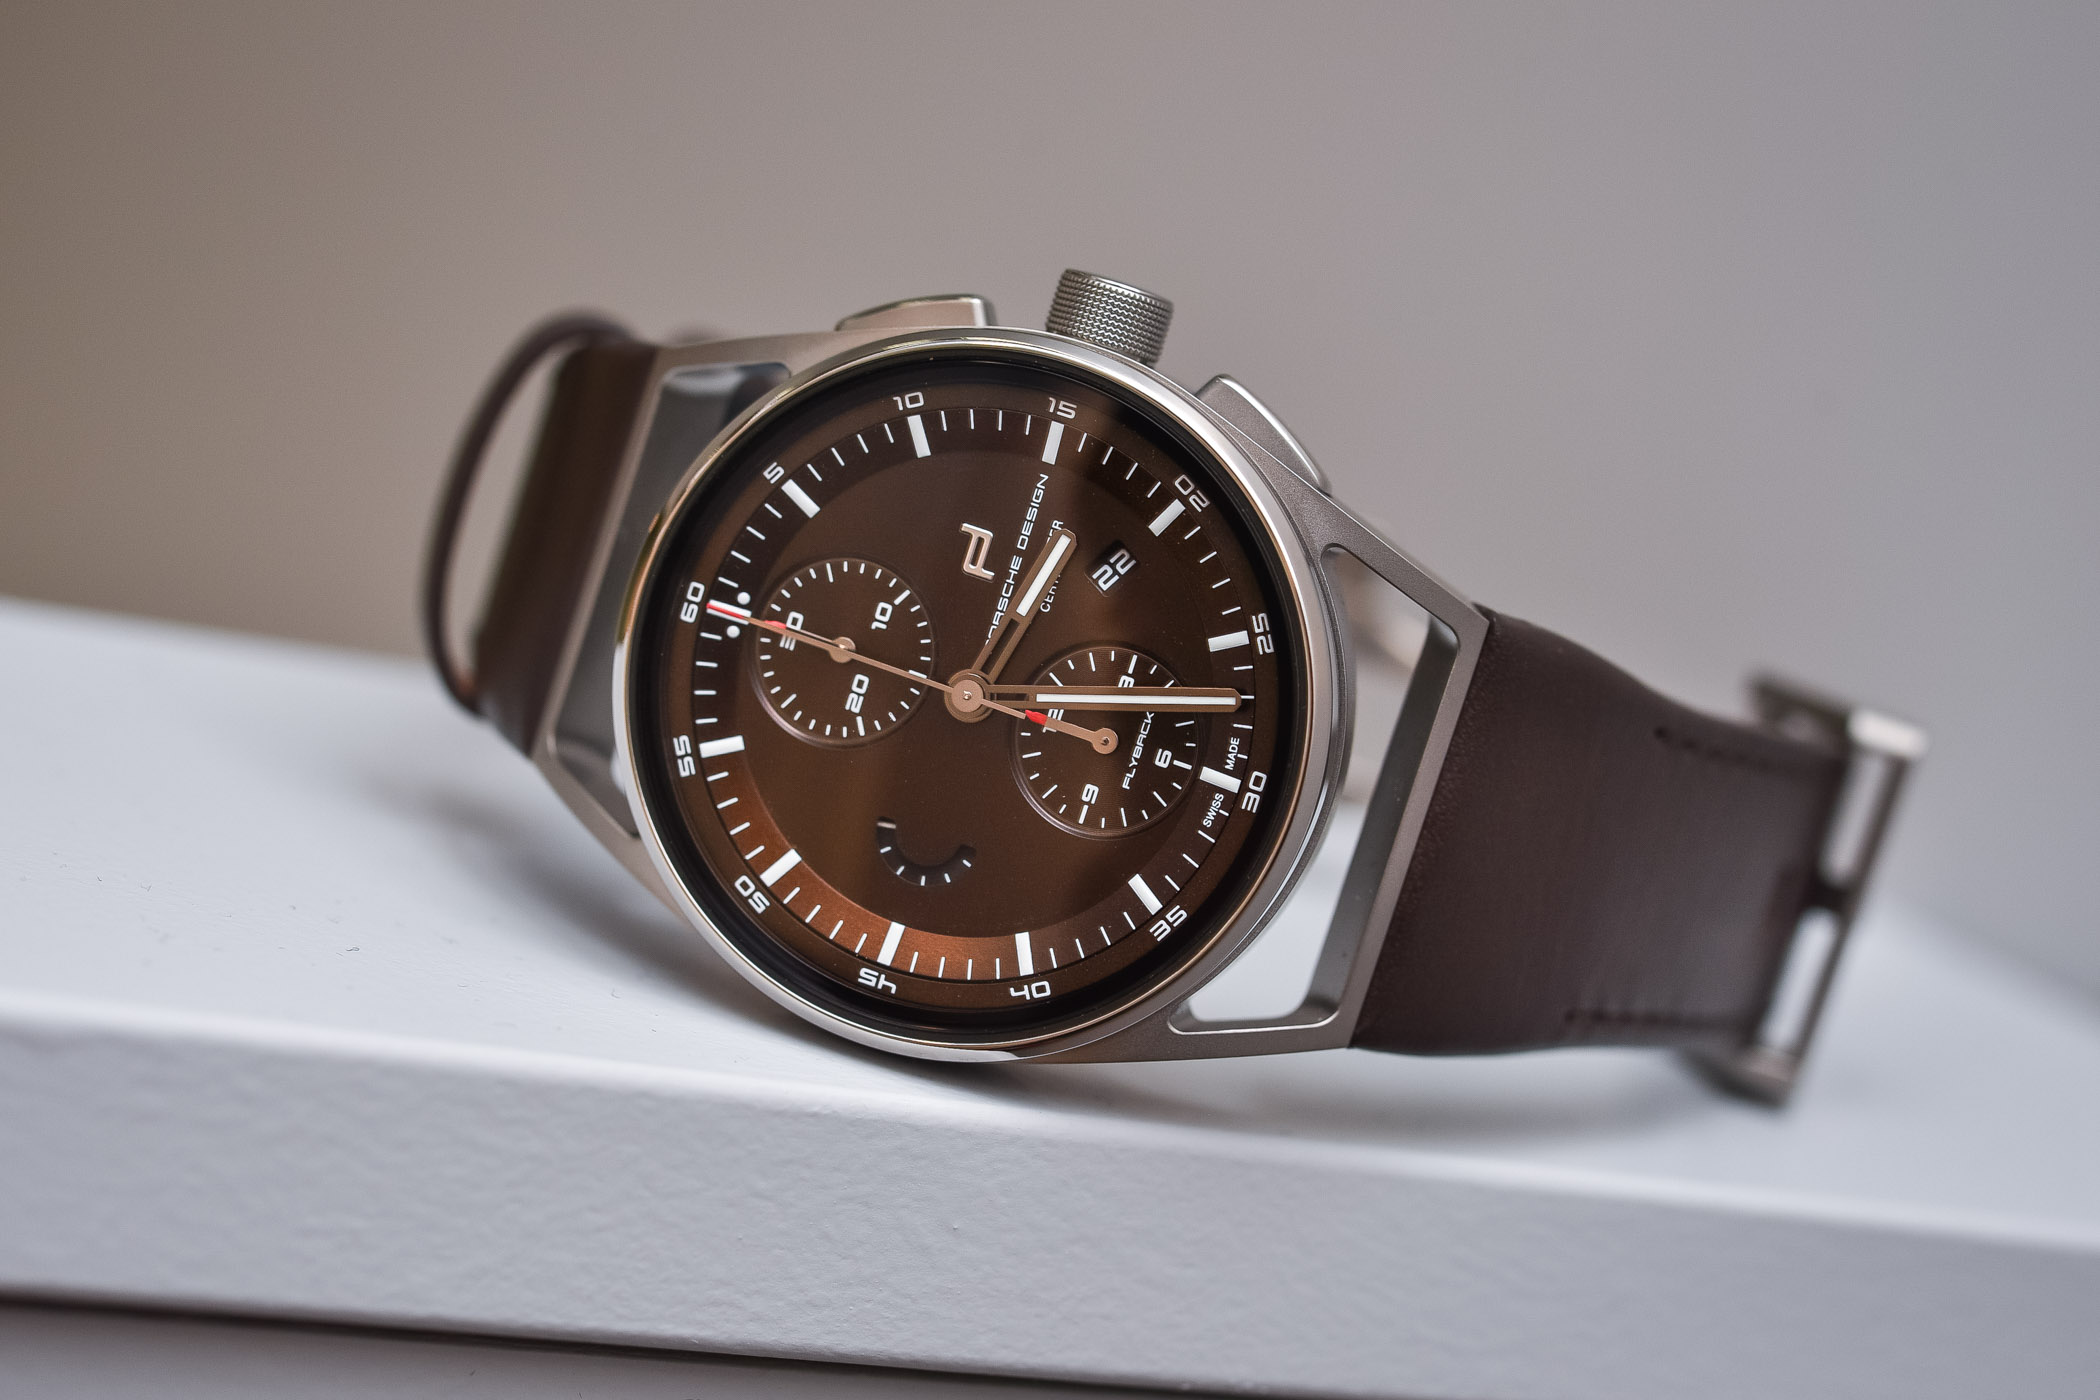 Porsche design 1919 Chronotimer Flyback Brown and Leather - Baselworld 2018